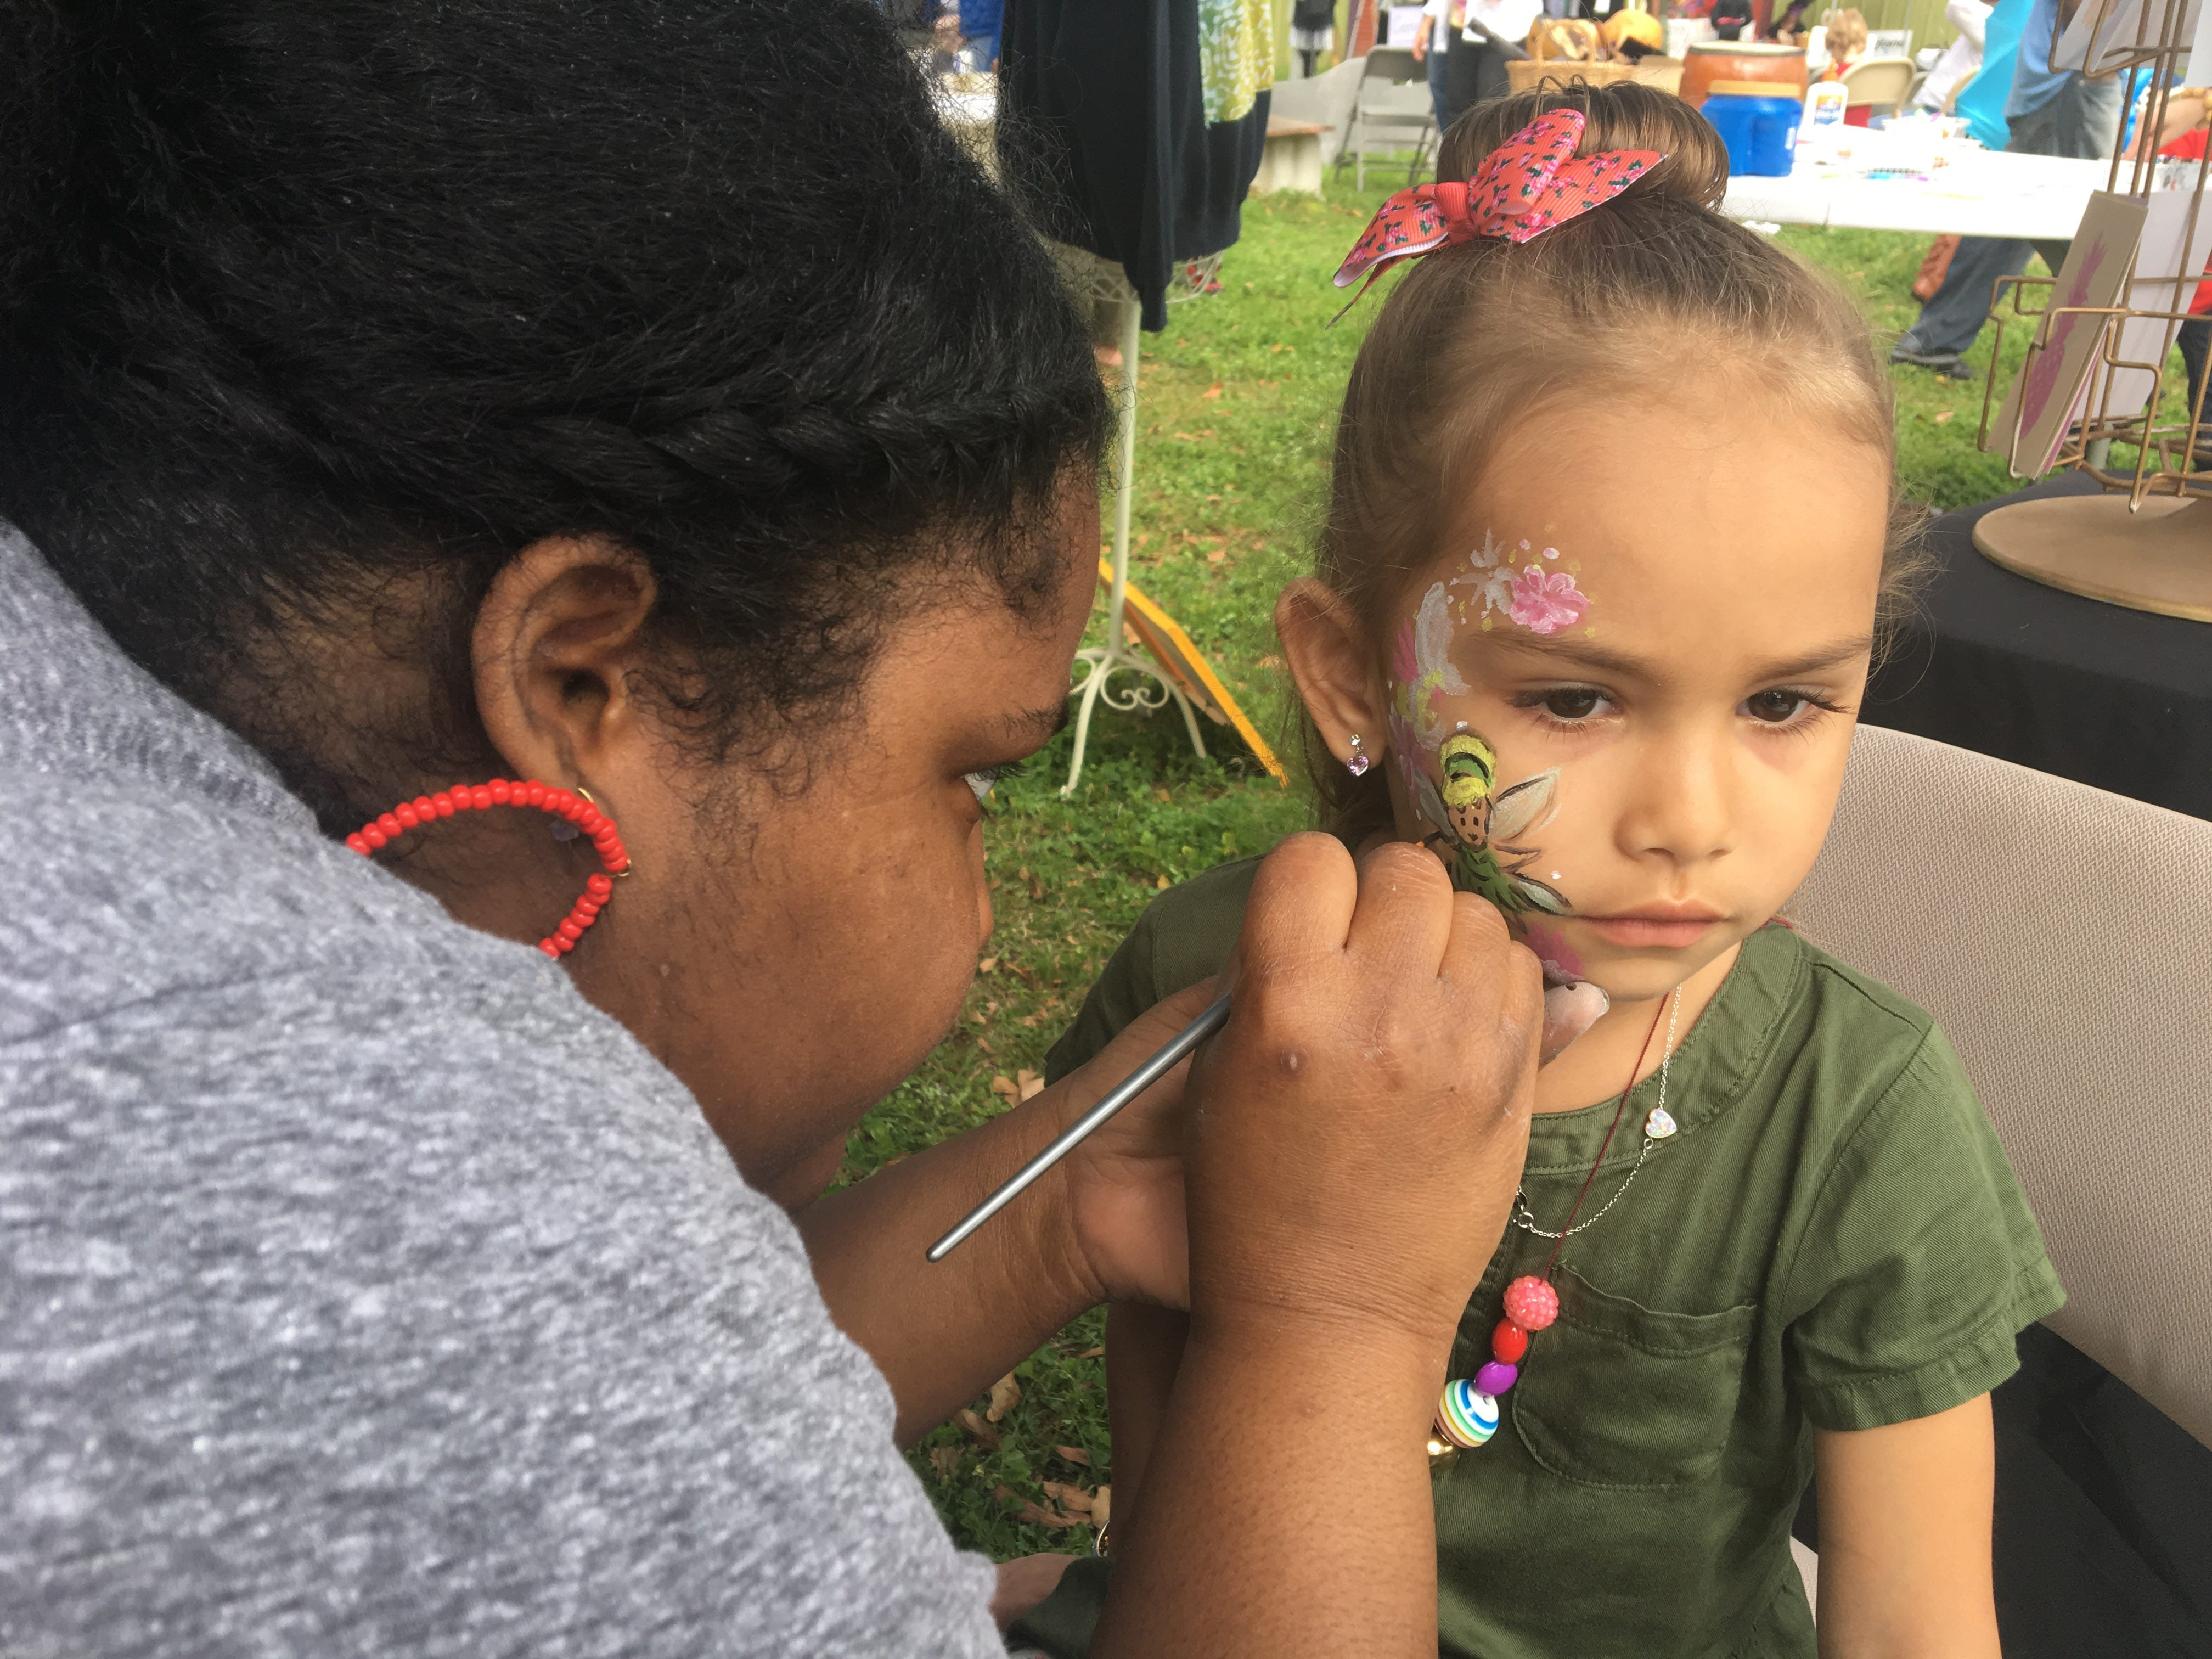 Penelope Villalona, 4, gets her face painted by The Fuzzy Pineapple's Nefetari Dannard at ArtiGras 2019.